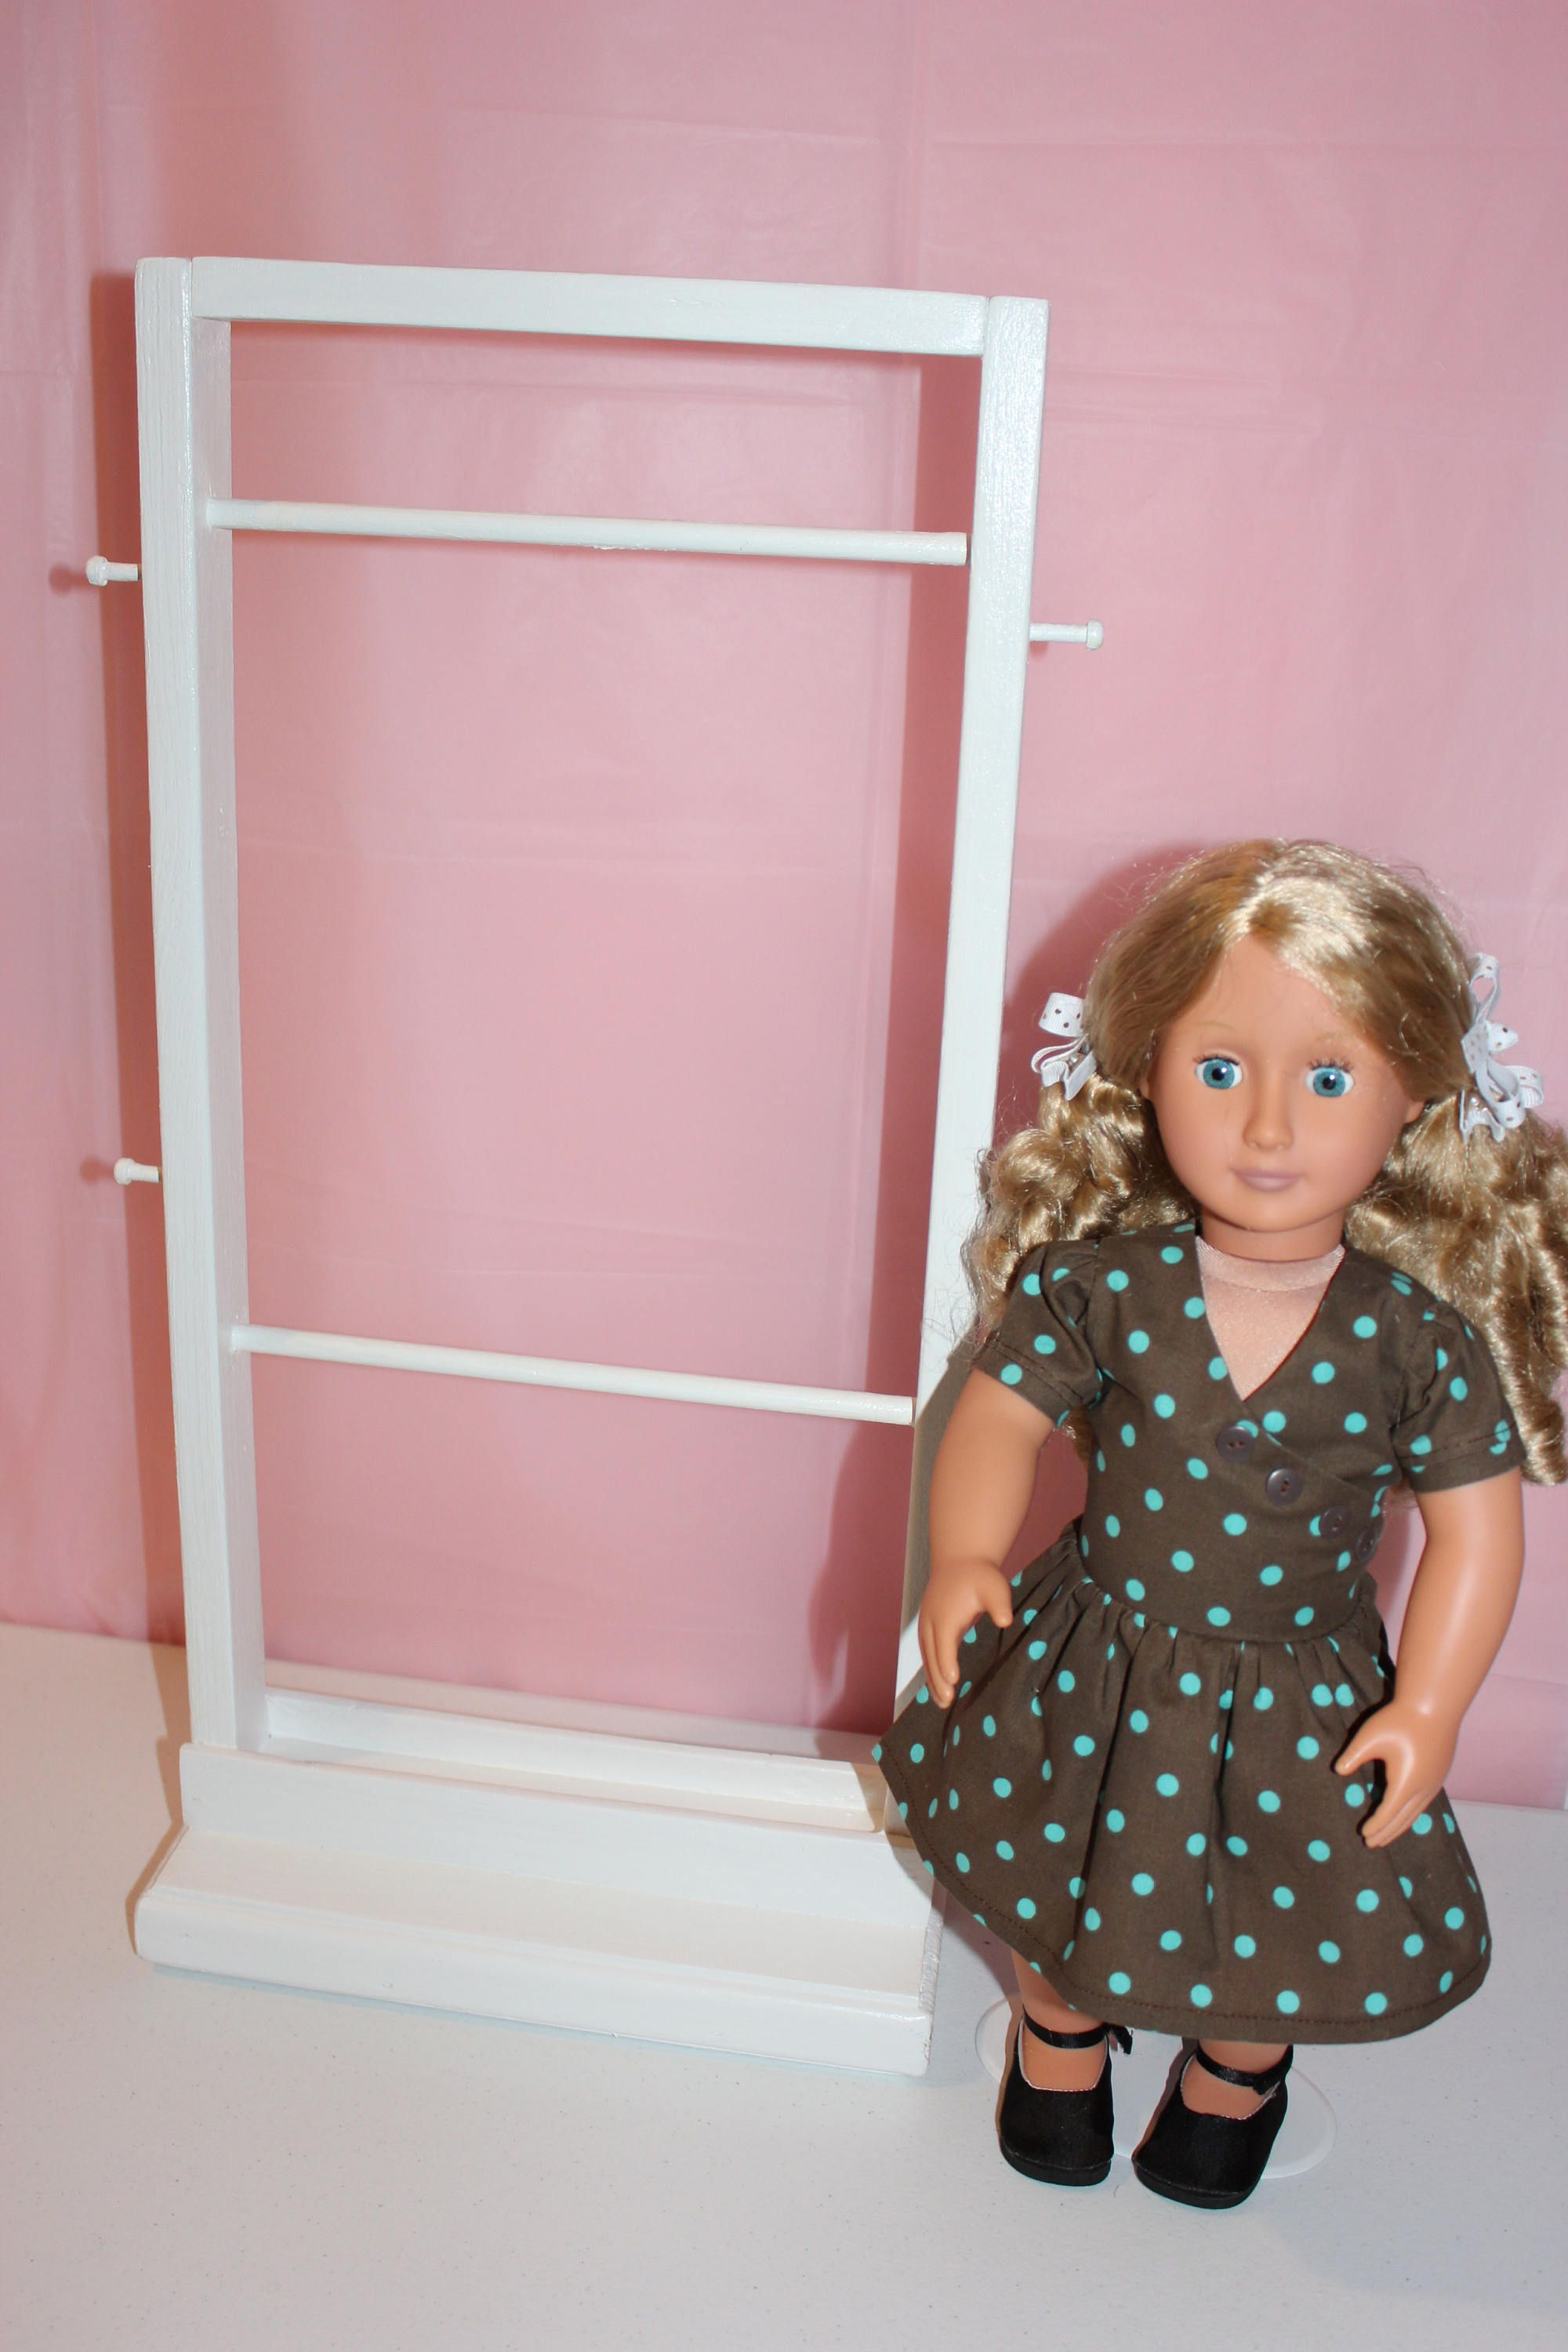 Doll Clothes Rack,White Clothes Rack,Clothes Storage,Doll Furniture,18 Inch